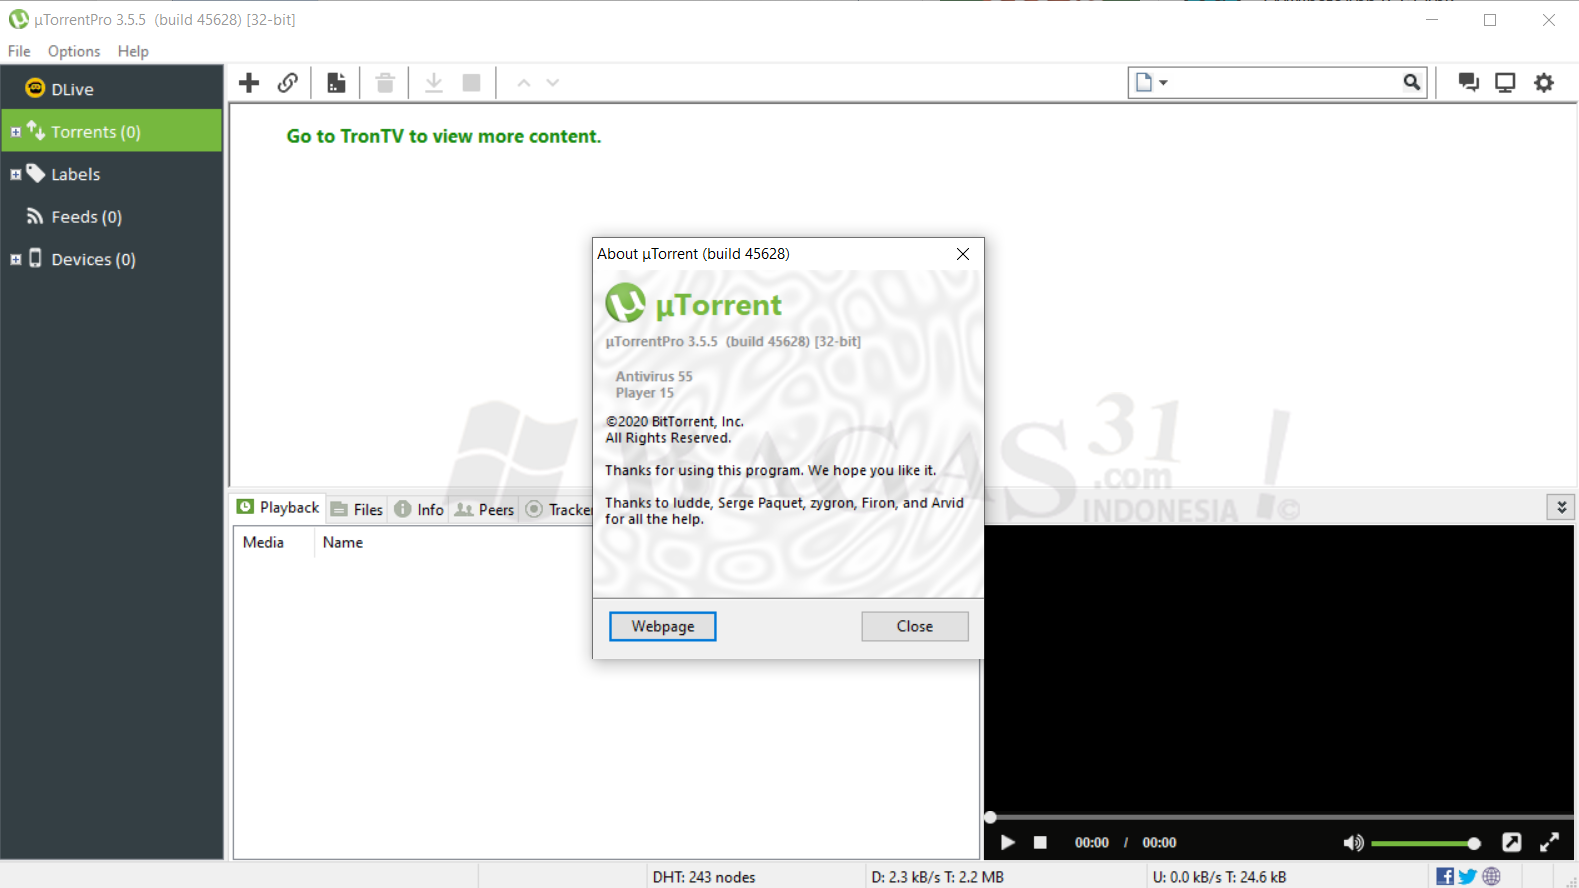 uTorrent Pro 3.5.5 Build 45628 Full Version